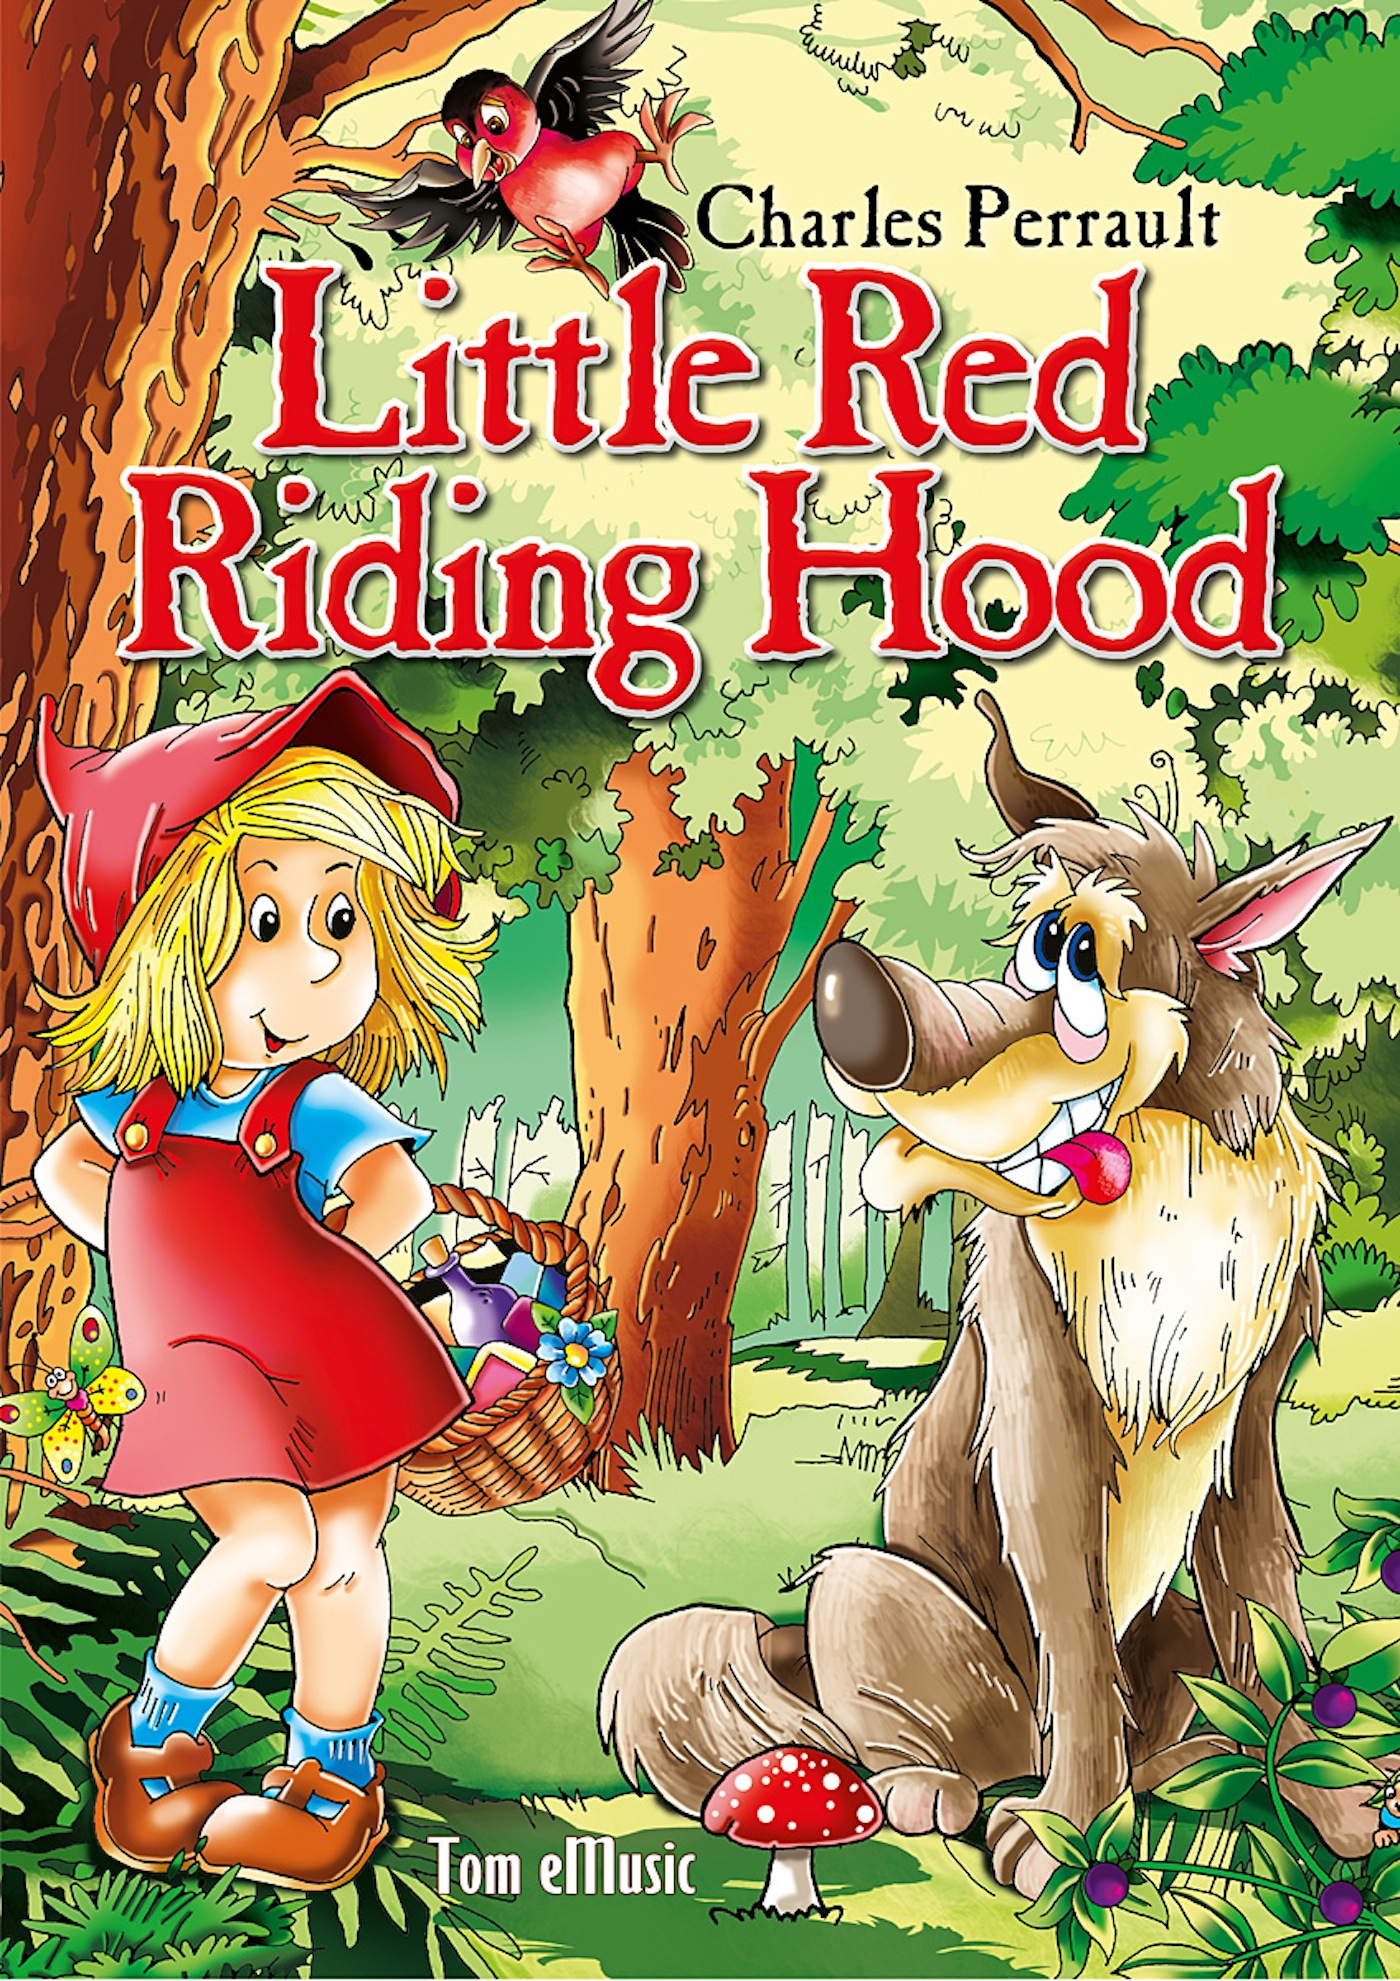 Charles perrault little red riding hood symbolism mujiskak desexualizing little red riding hood a comparison of charles perraults and the brothers grimms versions of the popular fairy tale buycottarizona